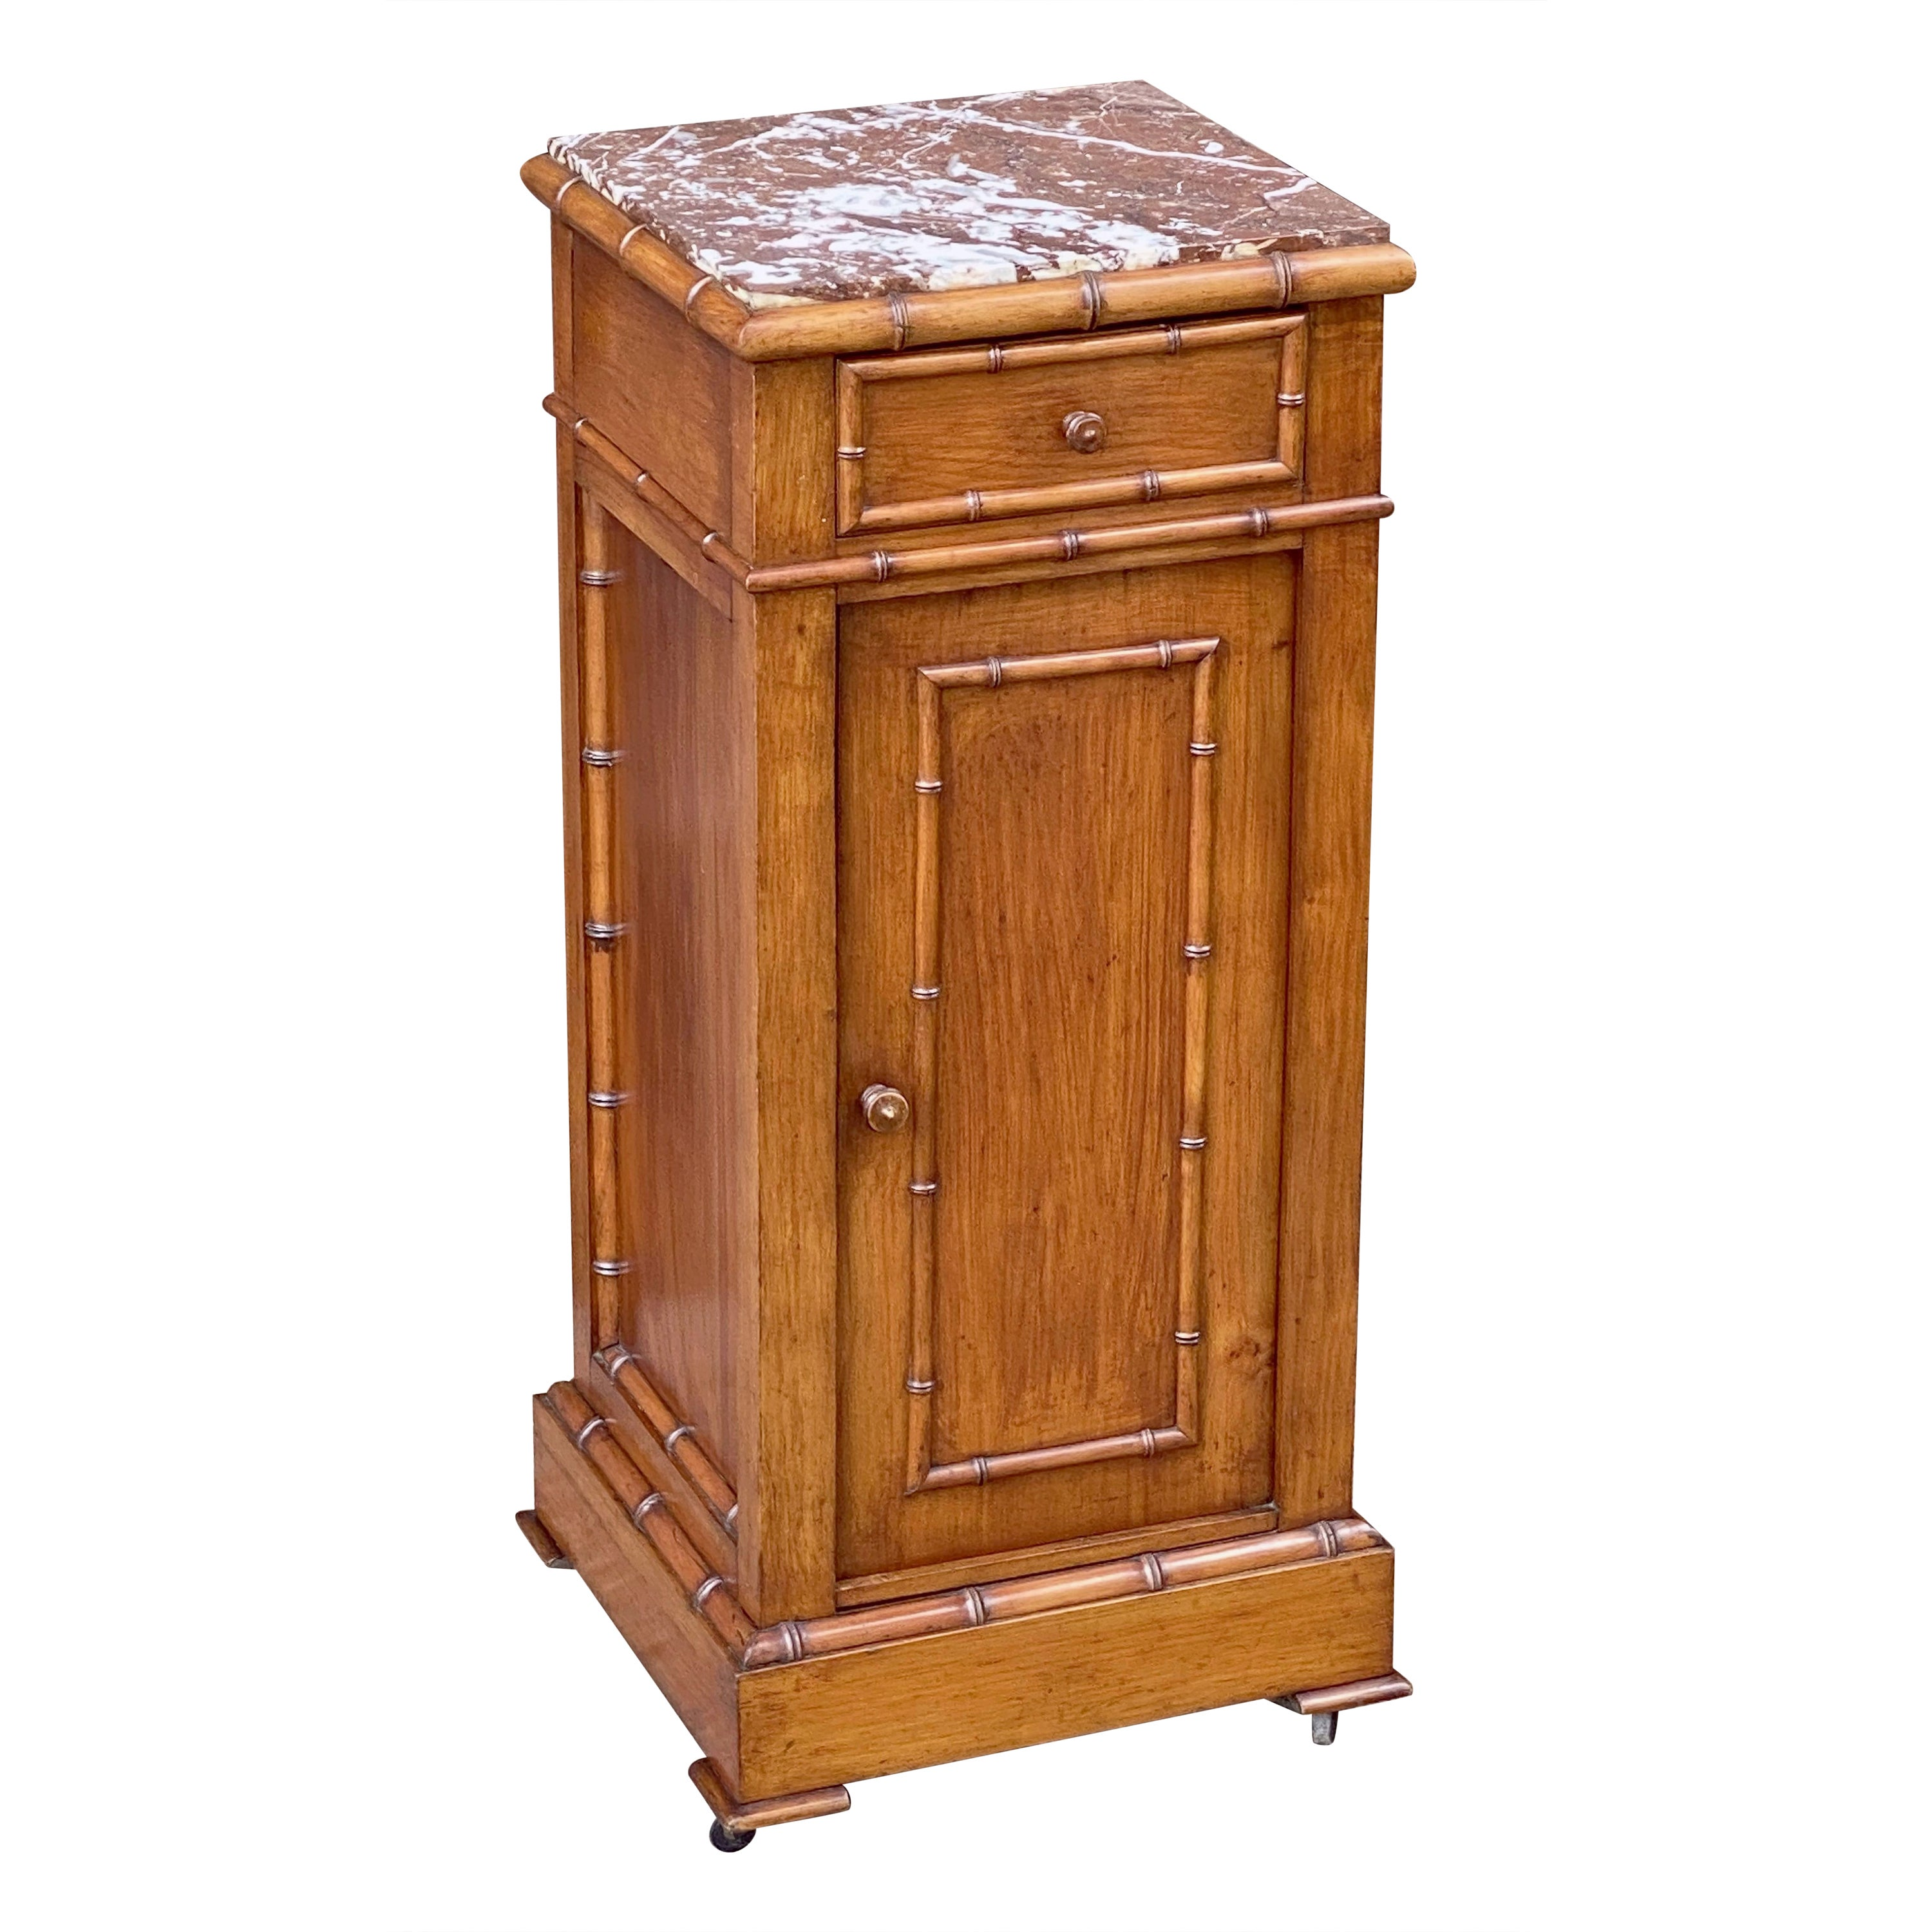 French Faux Bamboo Nightstand or Bedside Table with Marble Top